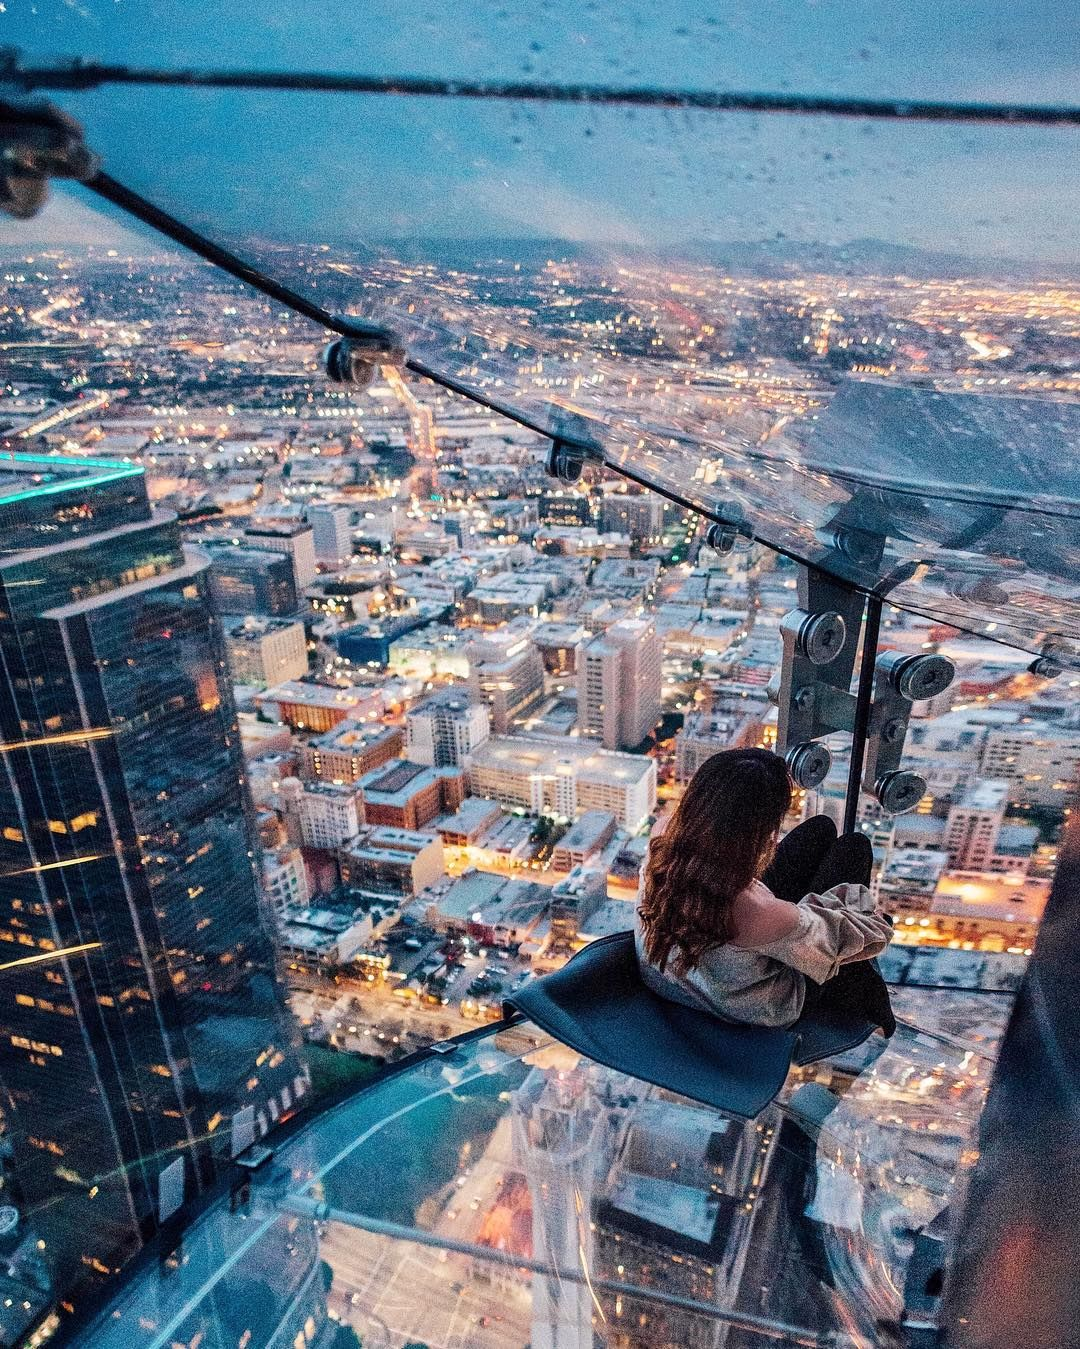 OUE Skyspace LA | Downtown, Los Angeles, Californi